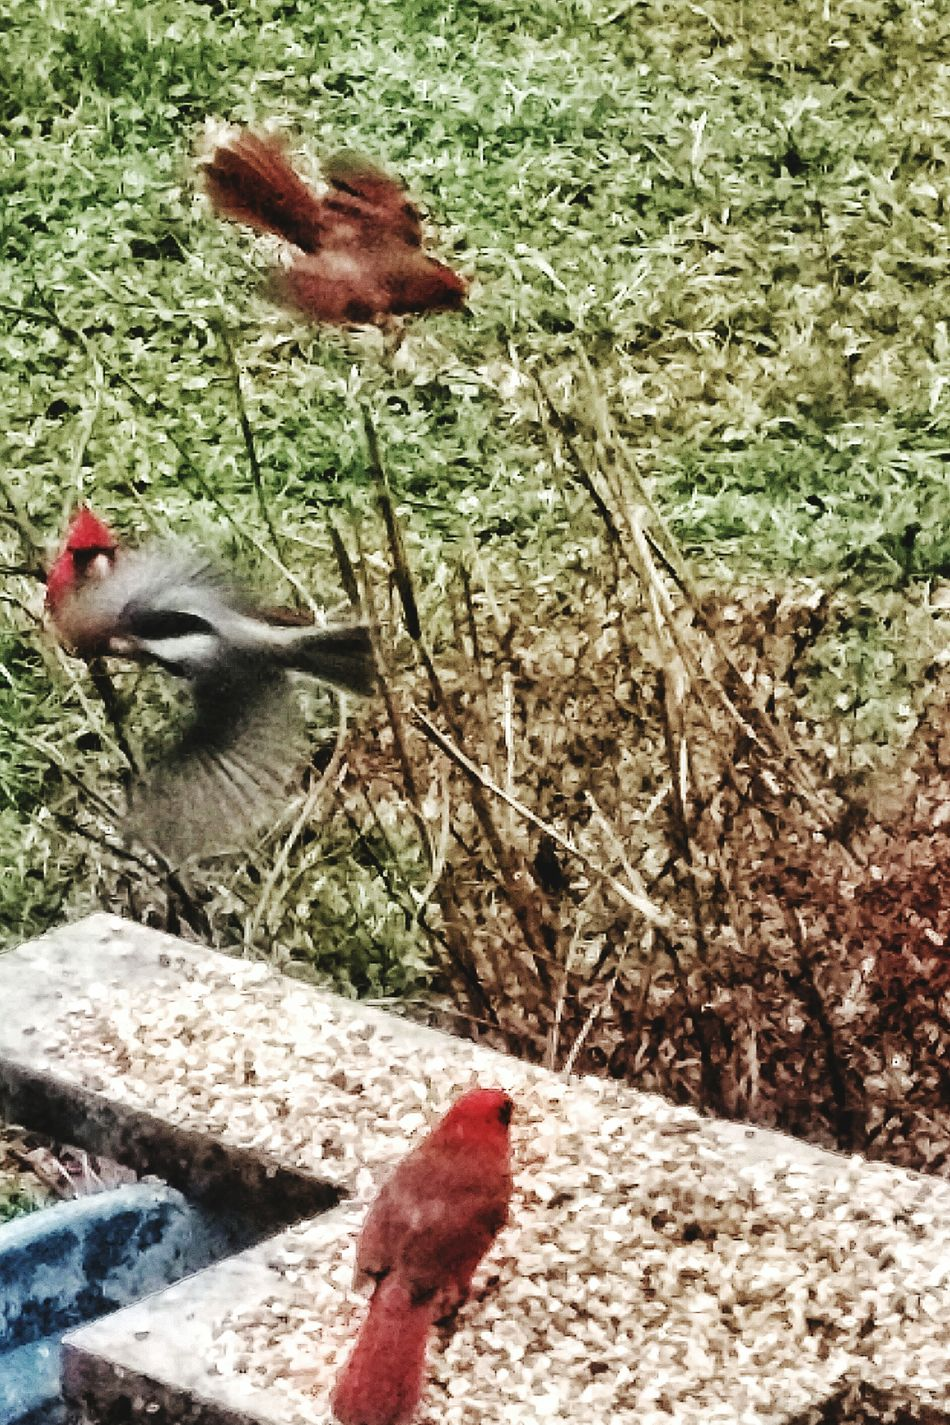 Birds In The Wild No People Ohio Cardinal In The Rain Bird Wild Nature Winter Time Birds Red Close-up Beauty In Nature Scenics Cardinal Cardinal Red Wild Birds Wild Bird Peebles Animals In The Wild Birds Wildlife Winter Perching Birds In Flight